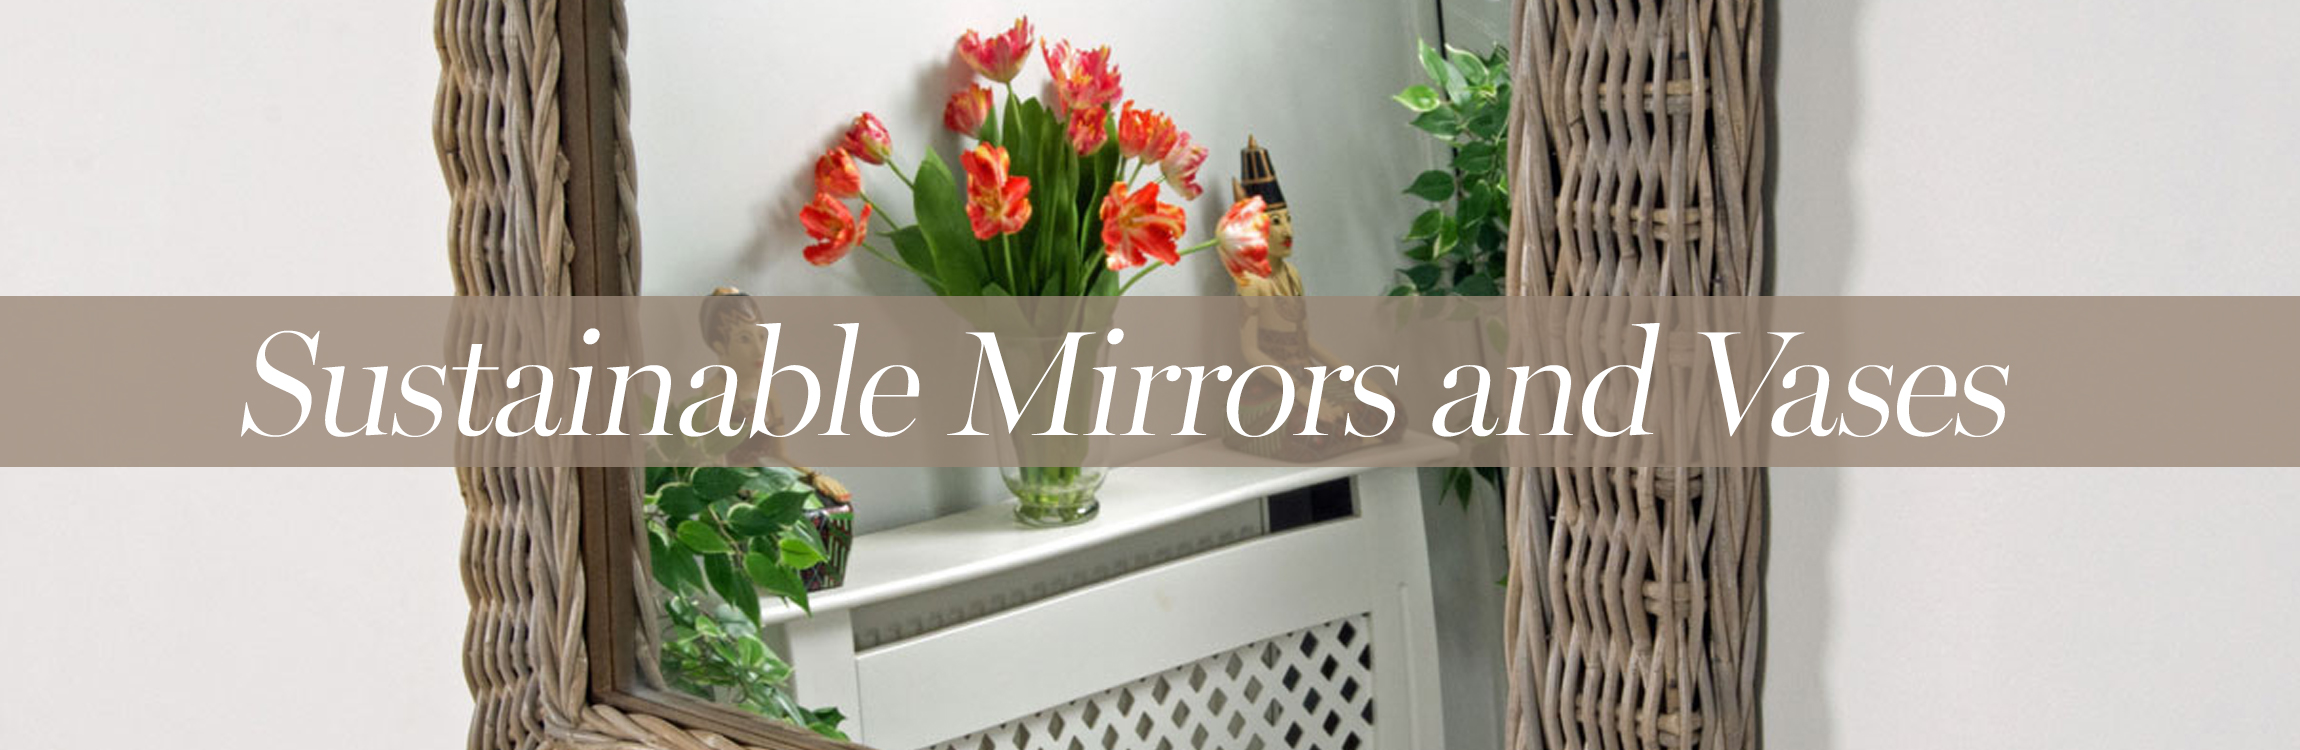 Mirrors and Vases